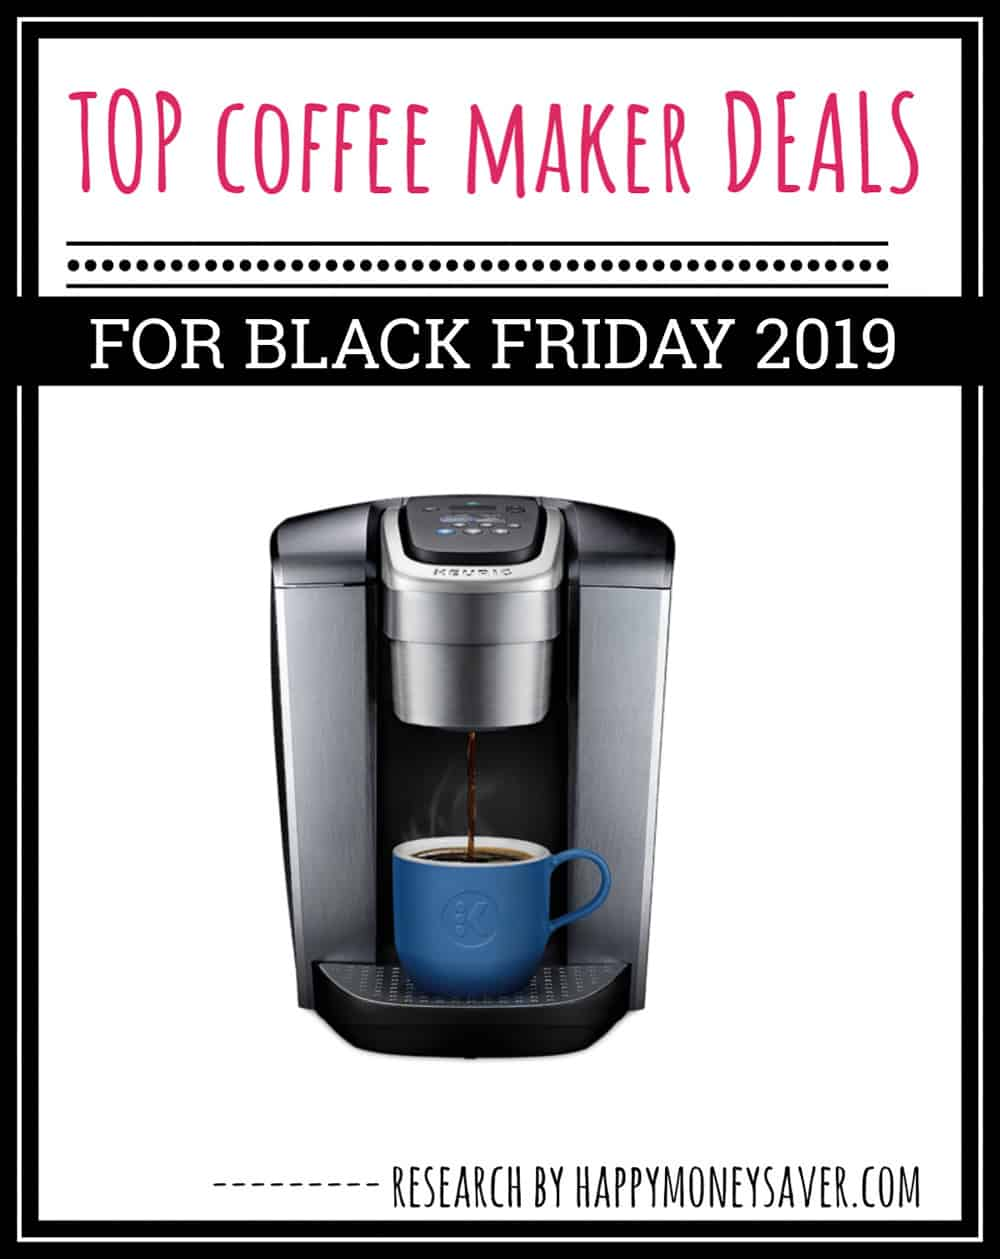 Top Coffee Maker Black Friday Deals 2019